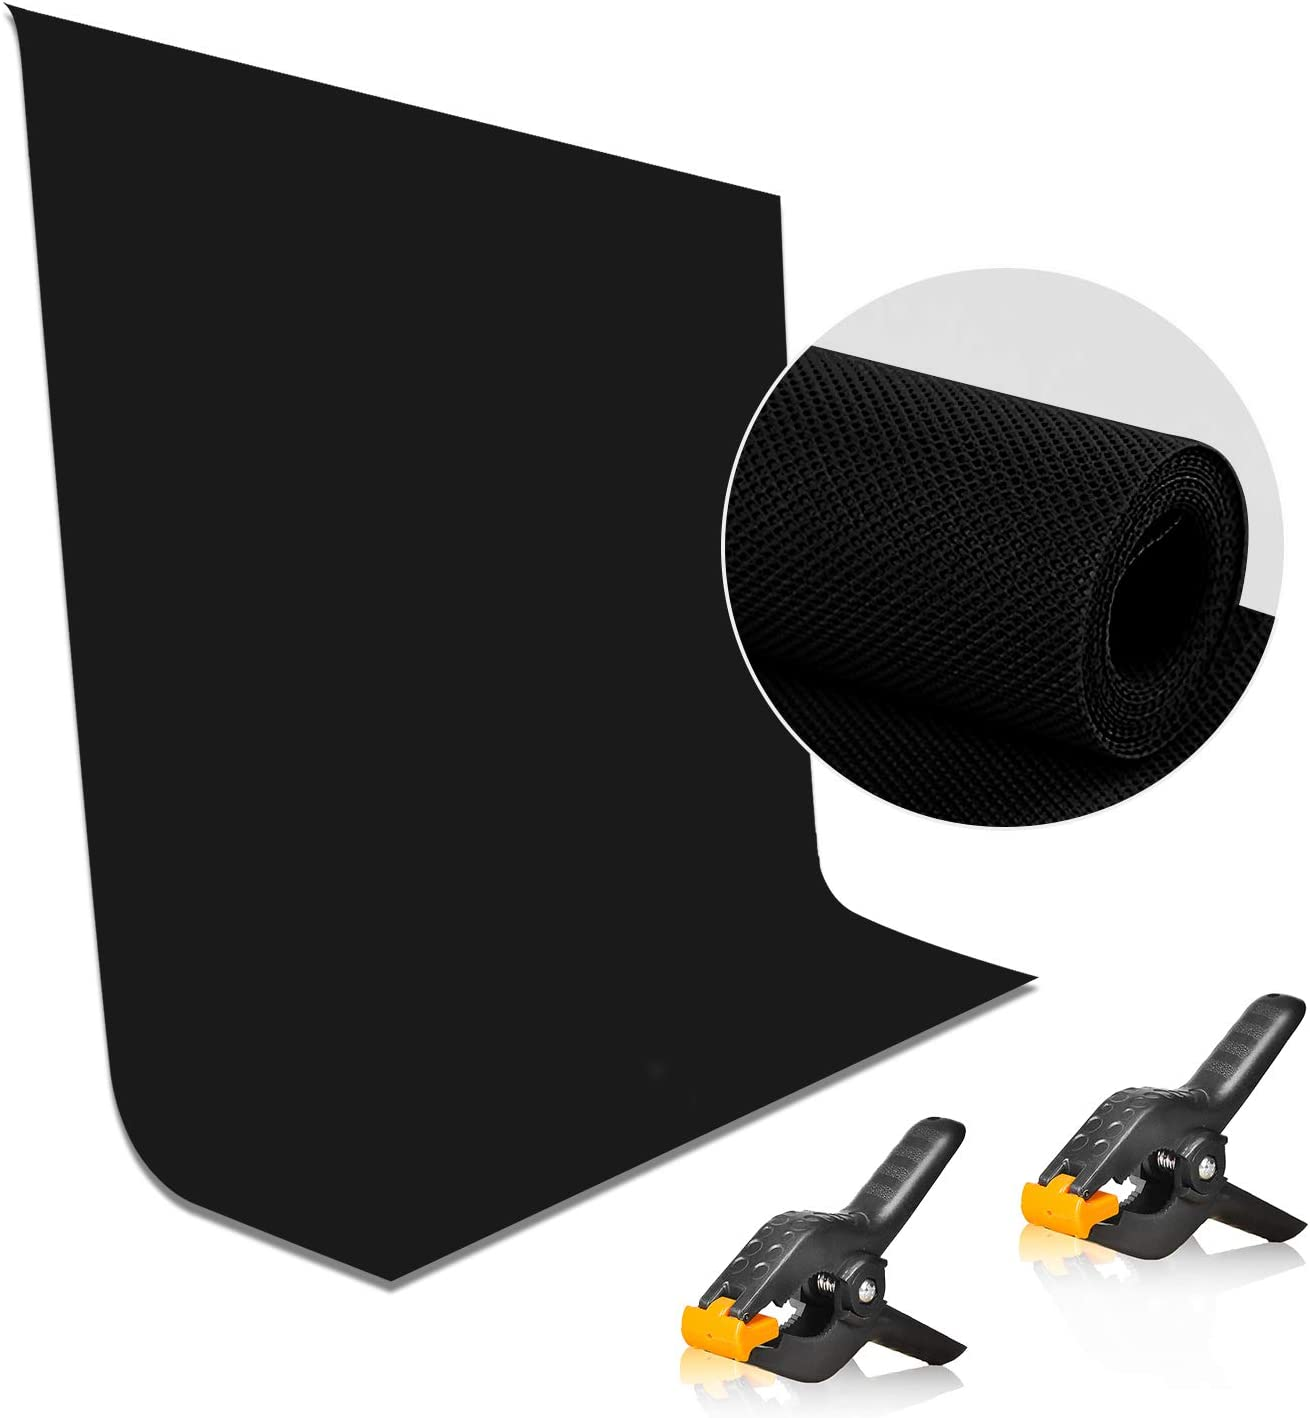 EMART 5x7 ft Non-Woven Fabric Solid Color Black Screen Photo Backdrop with 2 x Backdrop Clamps for Photoshoot, Studio, Video and Televison